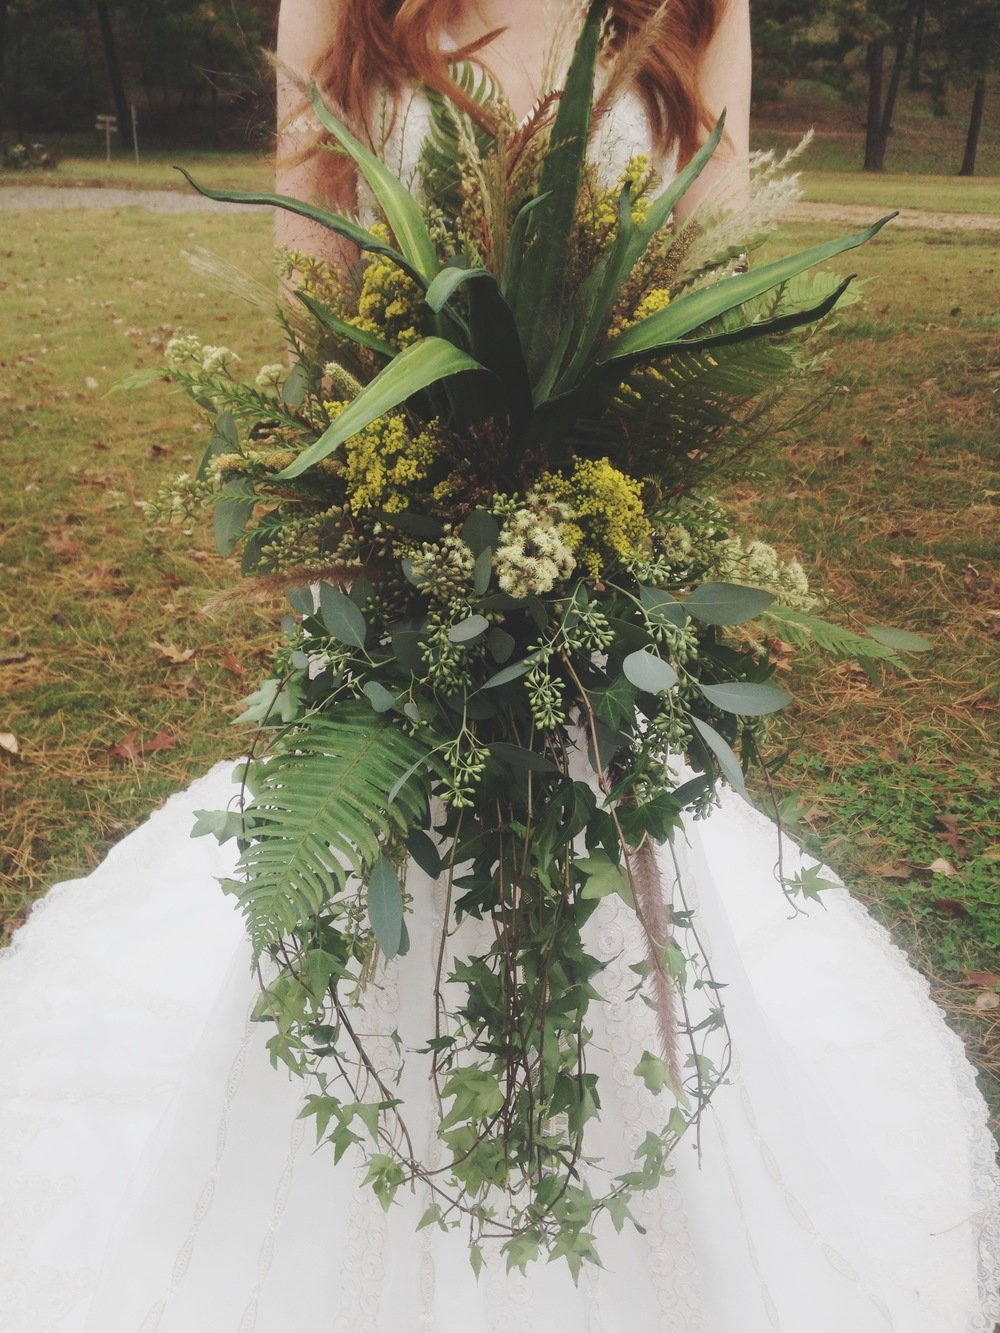 Our floral designer Ginger created this bouquet and all the fabulous headpieces and arrangements at the shoot. They were soooo gorgeous! Some of what she used came right out of The Barn's landscaping. It was stunning! (And this thing weighed like a million pounds.)